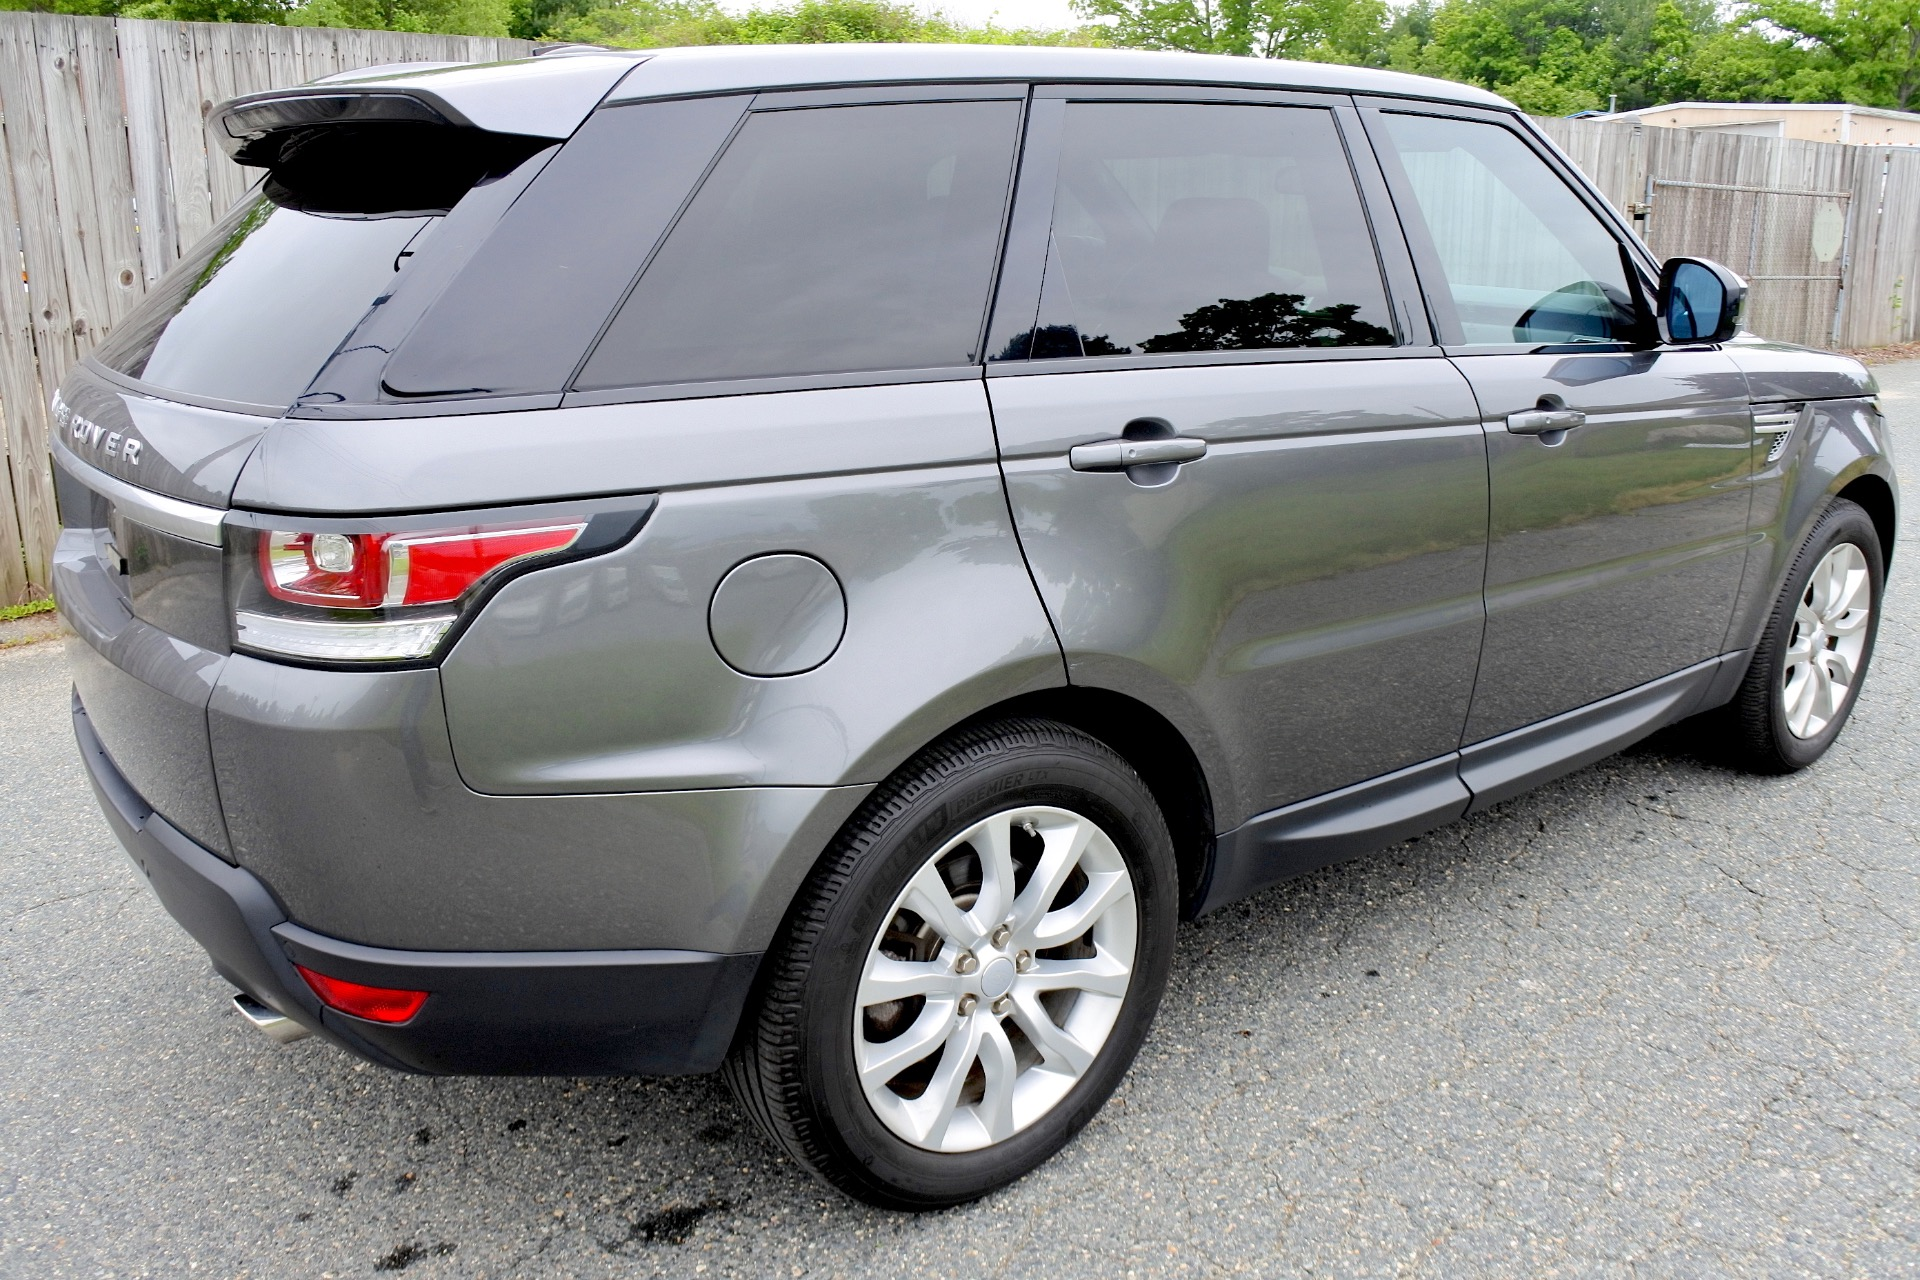 Used 2015 Land Rover Range Rover Sport HSE Used 2015 Land Rover Range Rover Sport HSE for sale  at Metro West Motorcars LLC in Shrewsbury MA 5